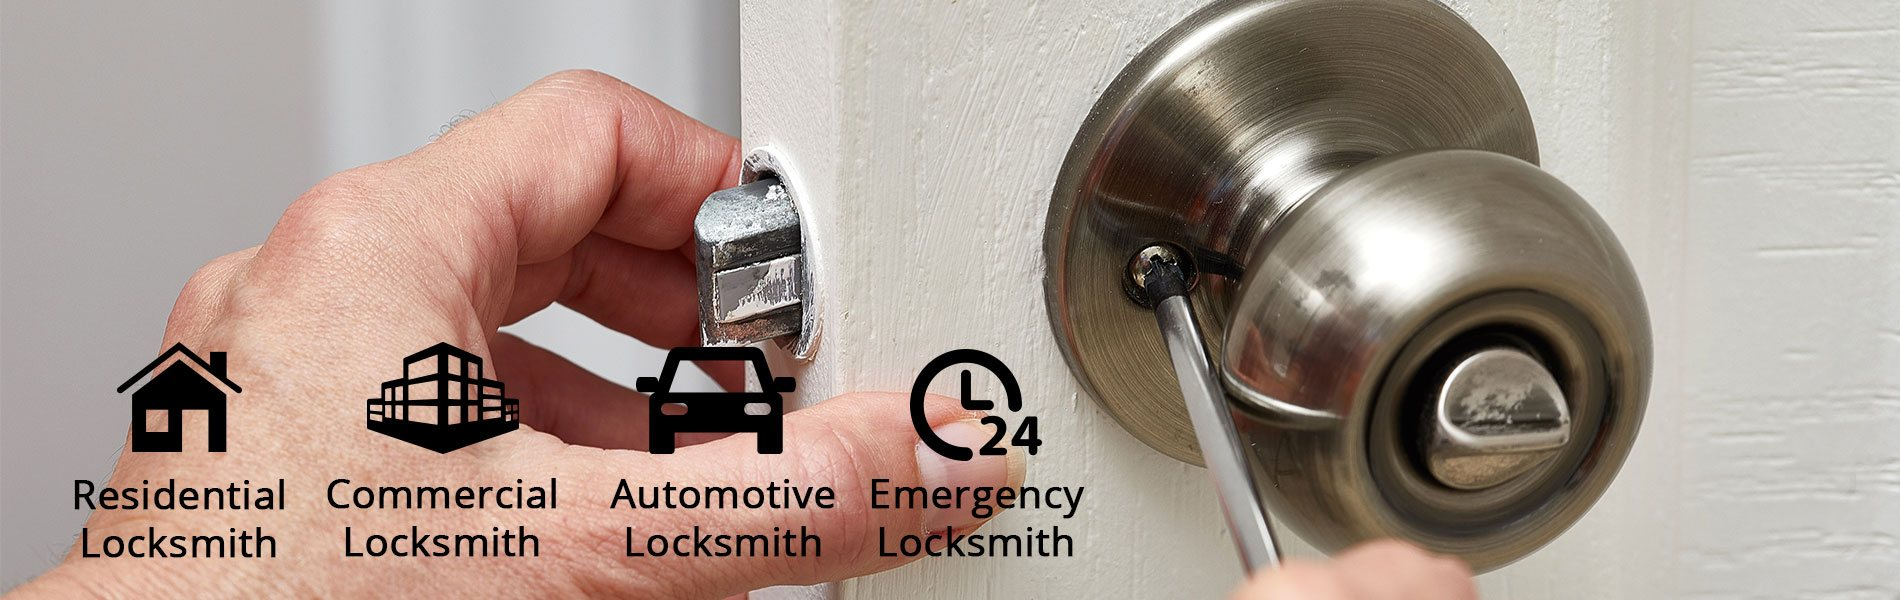 Lock Locksmith Services Denver, CO 303-566-9174